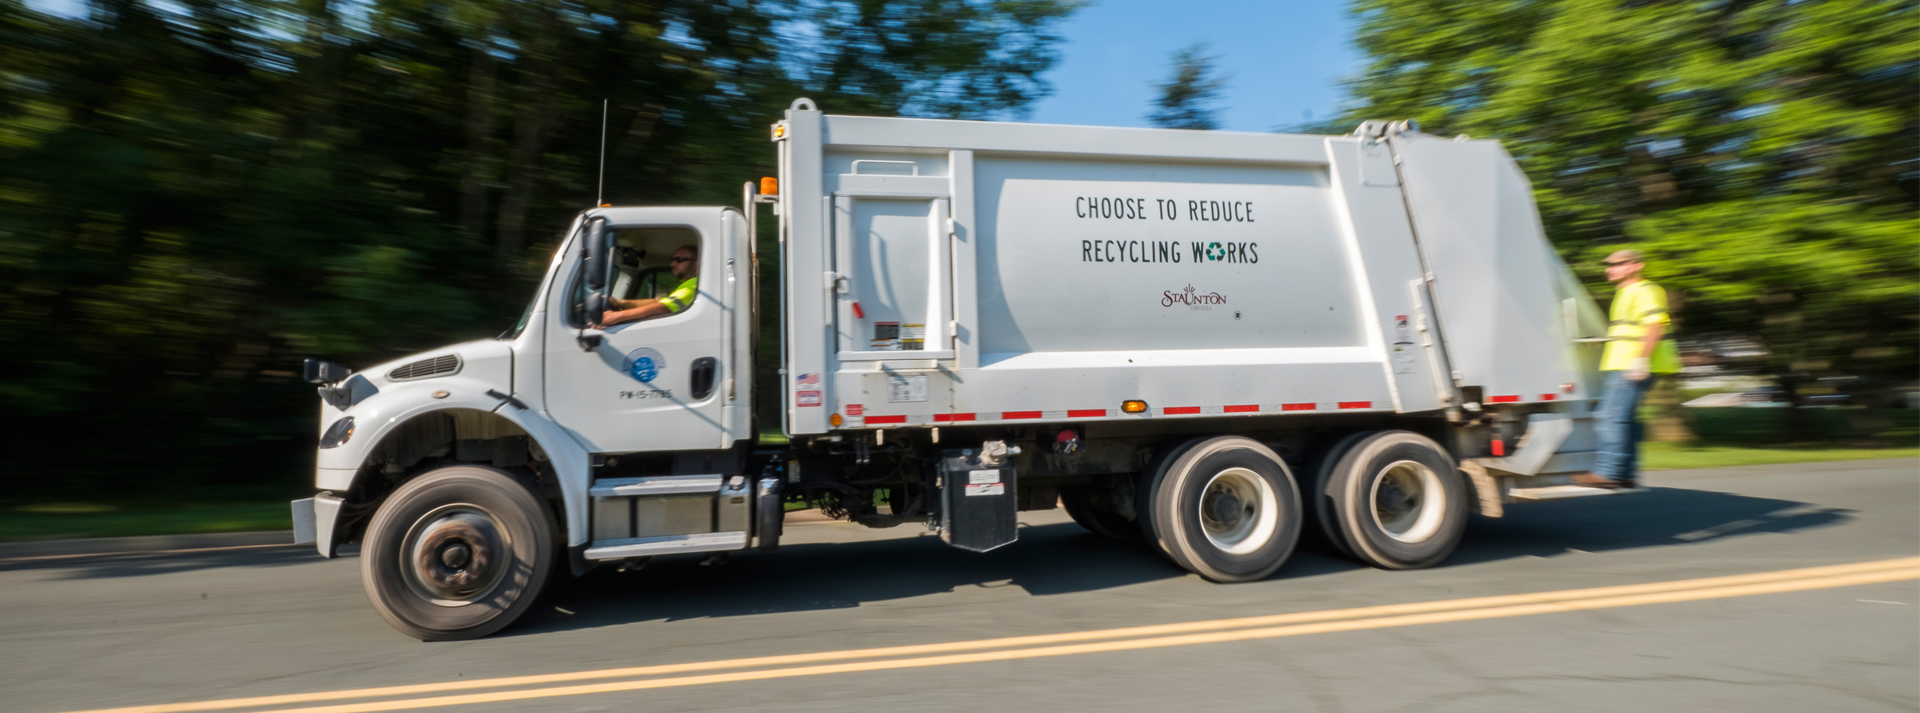 city trash truck in motion